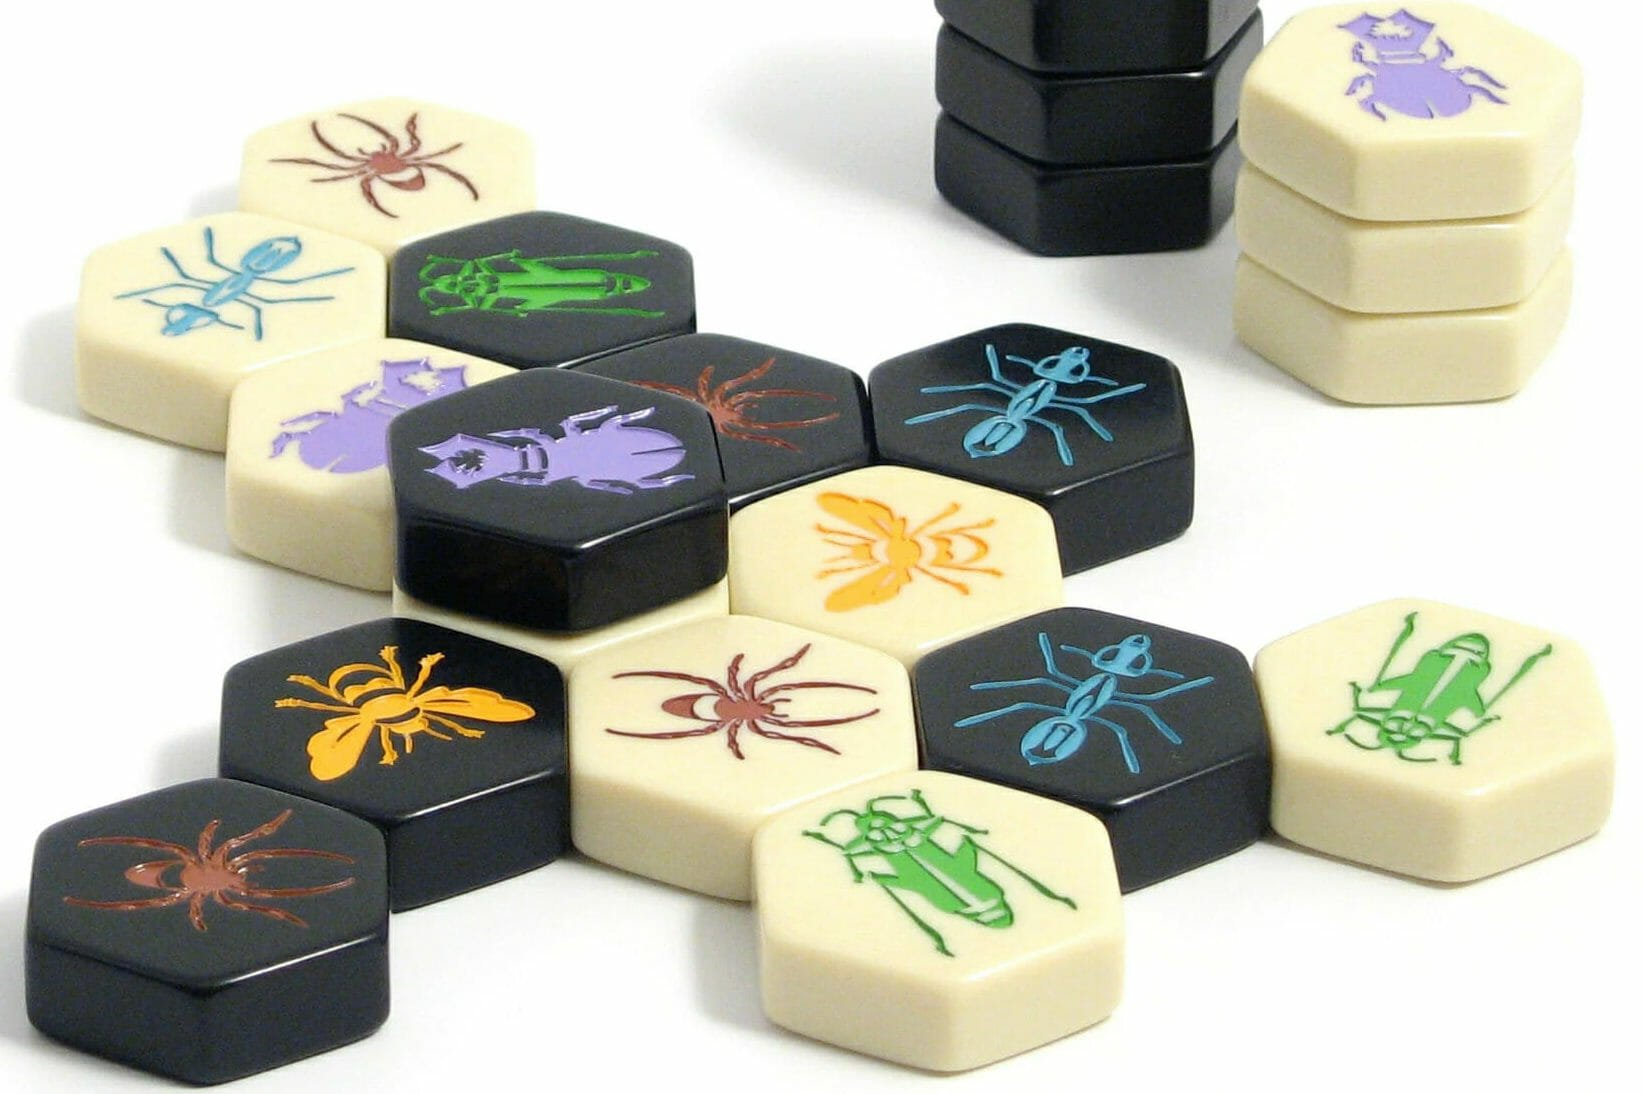 Hive 2 player board game